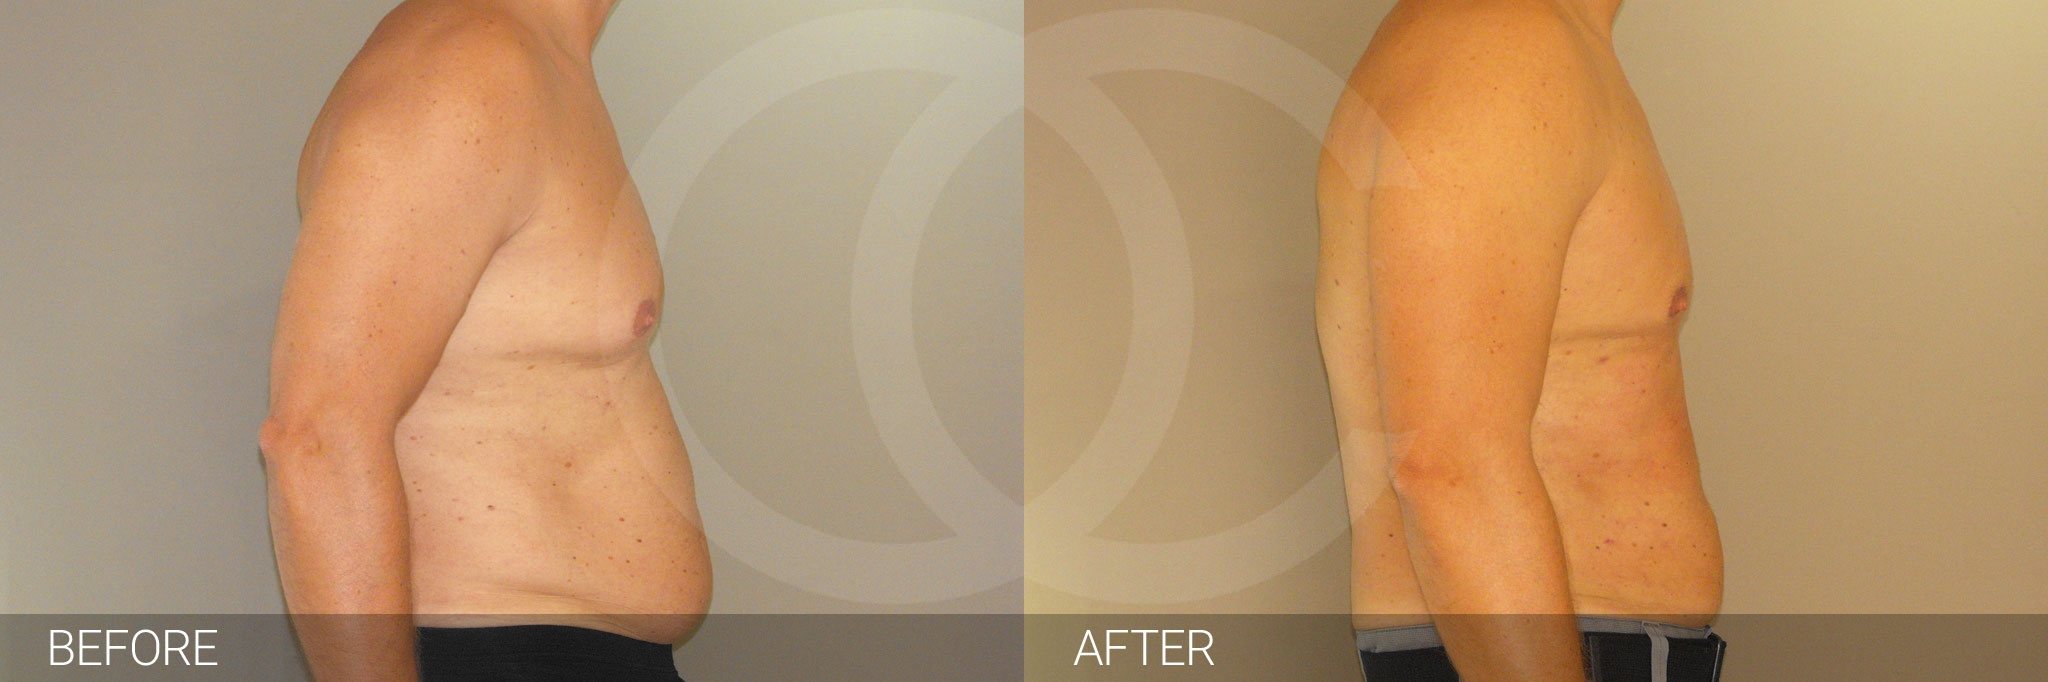 Gynecomastia MALE CHEST CONTOURING ante/post-op II